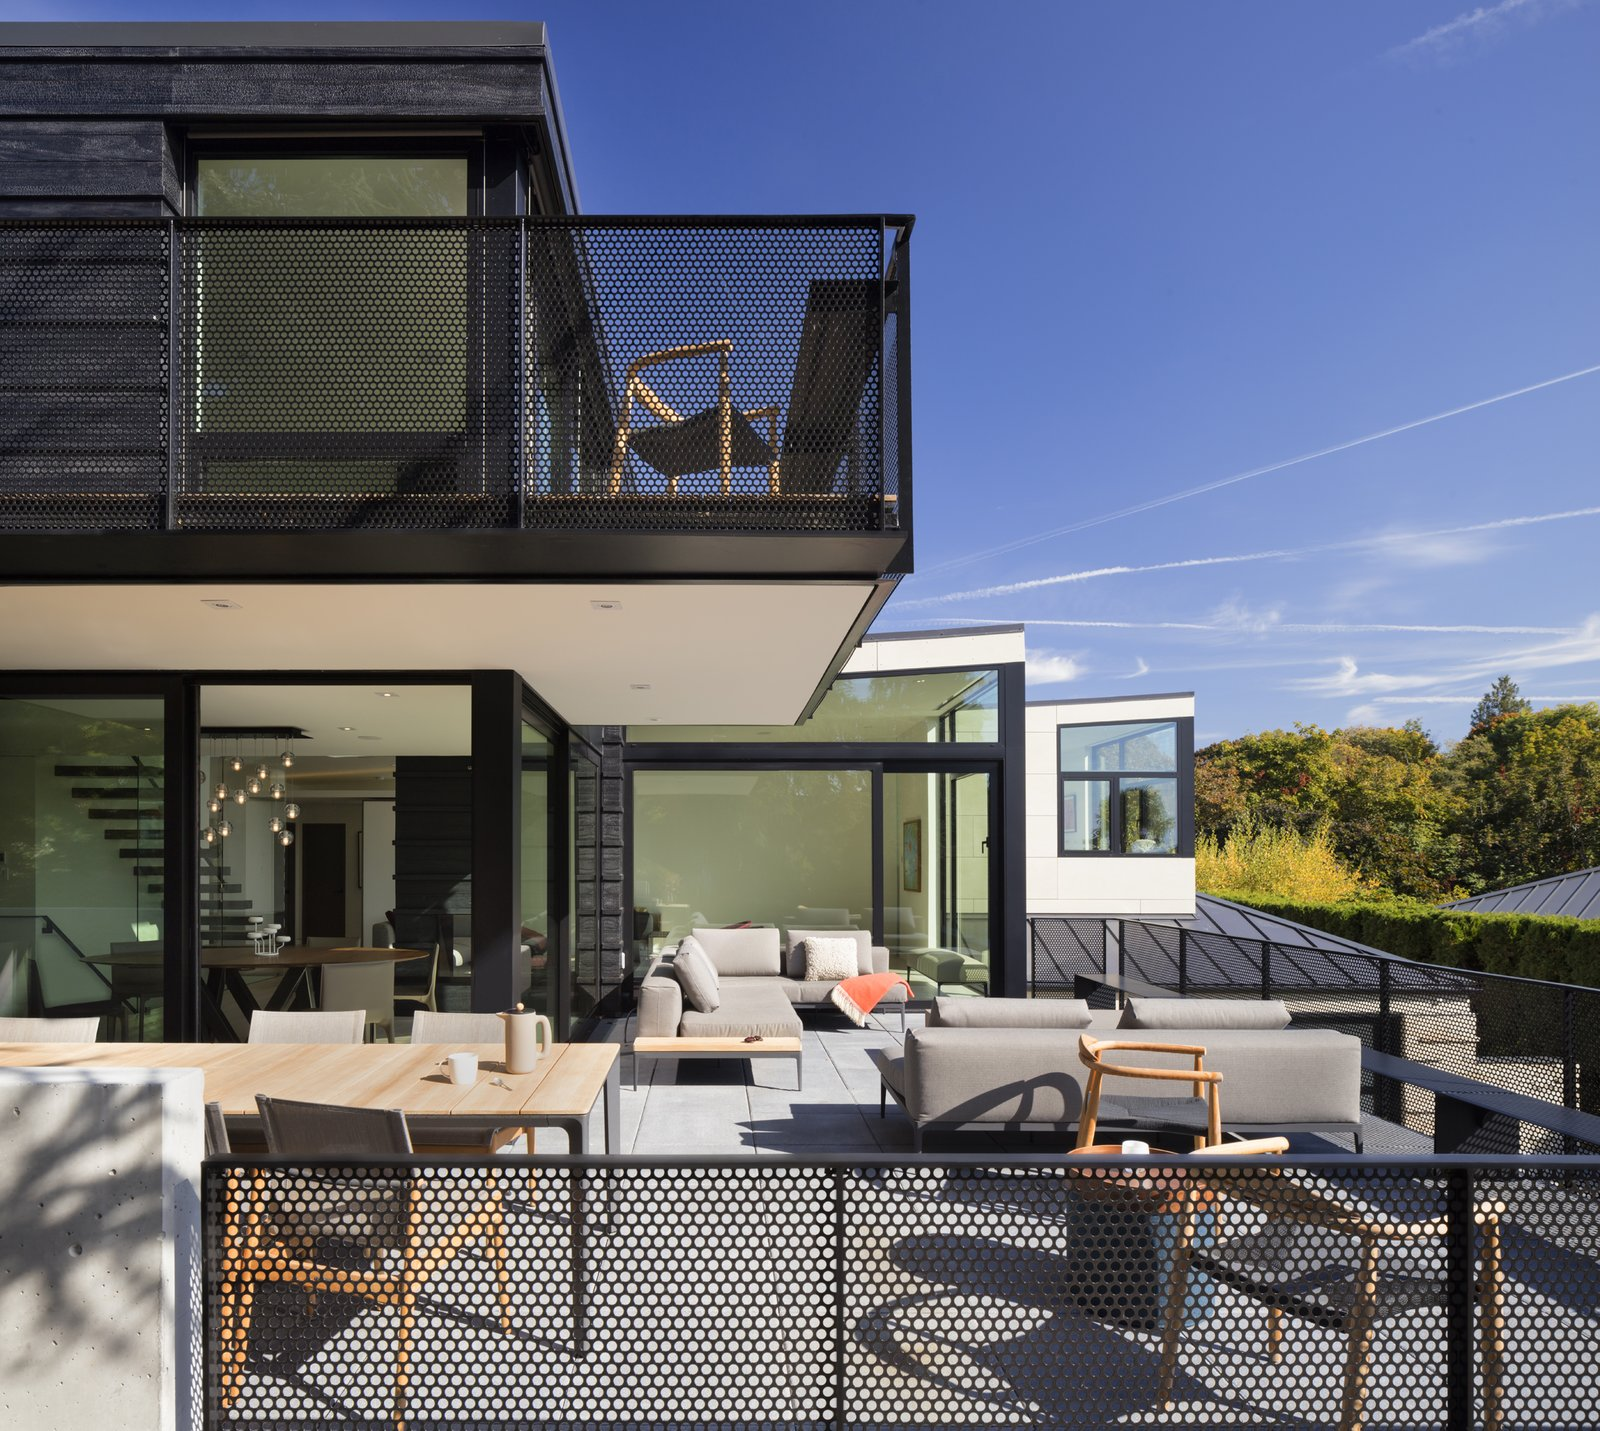 Exterior, Stone Siding Material, Concrete Siding Material, Glass Siding Material, Metal Roof Material, House Building Type, Flat RoofLine, Wood Siding Material, Metal Siding Material, and Shed RoofLine Terrace and Upper Deck  David Coleman / Architecture's Favorites from Bay View Residence